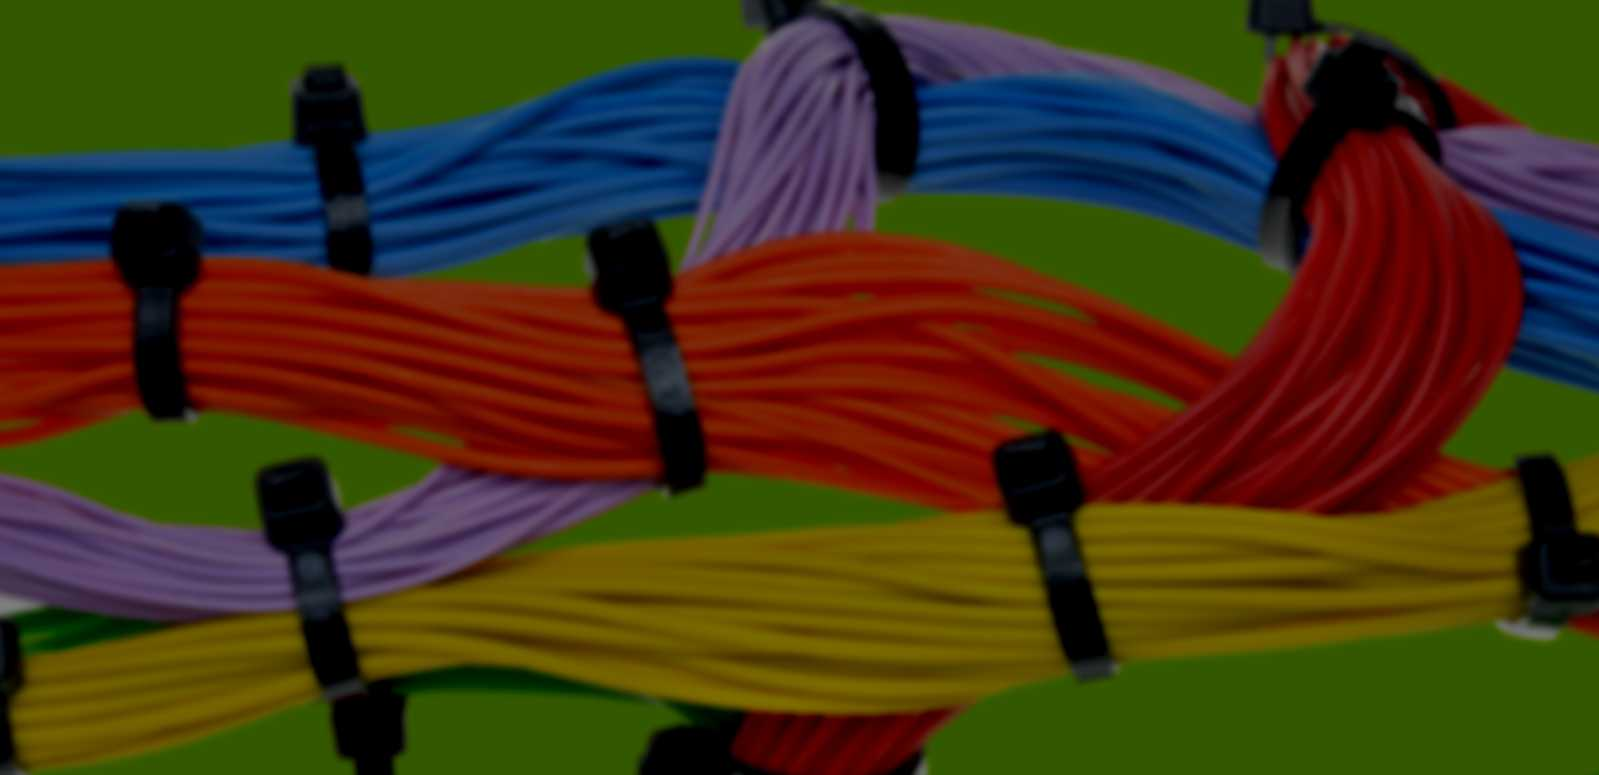 Cable Tie Background